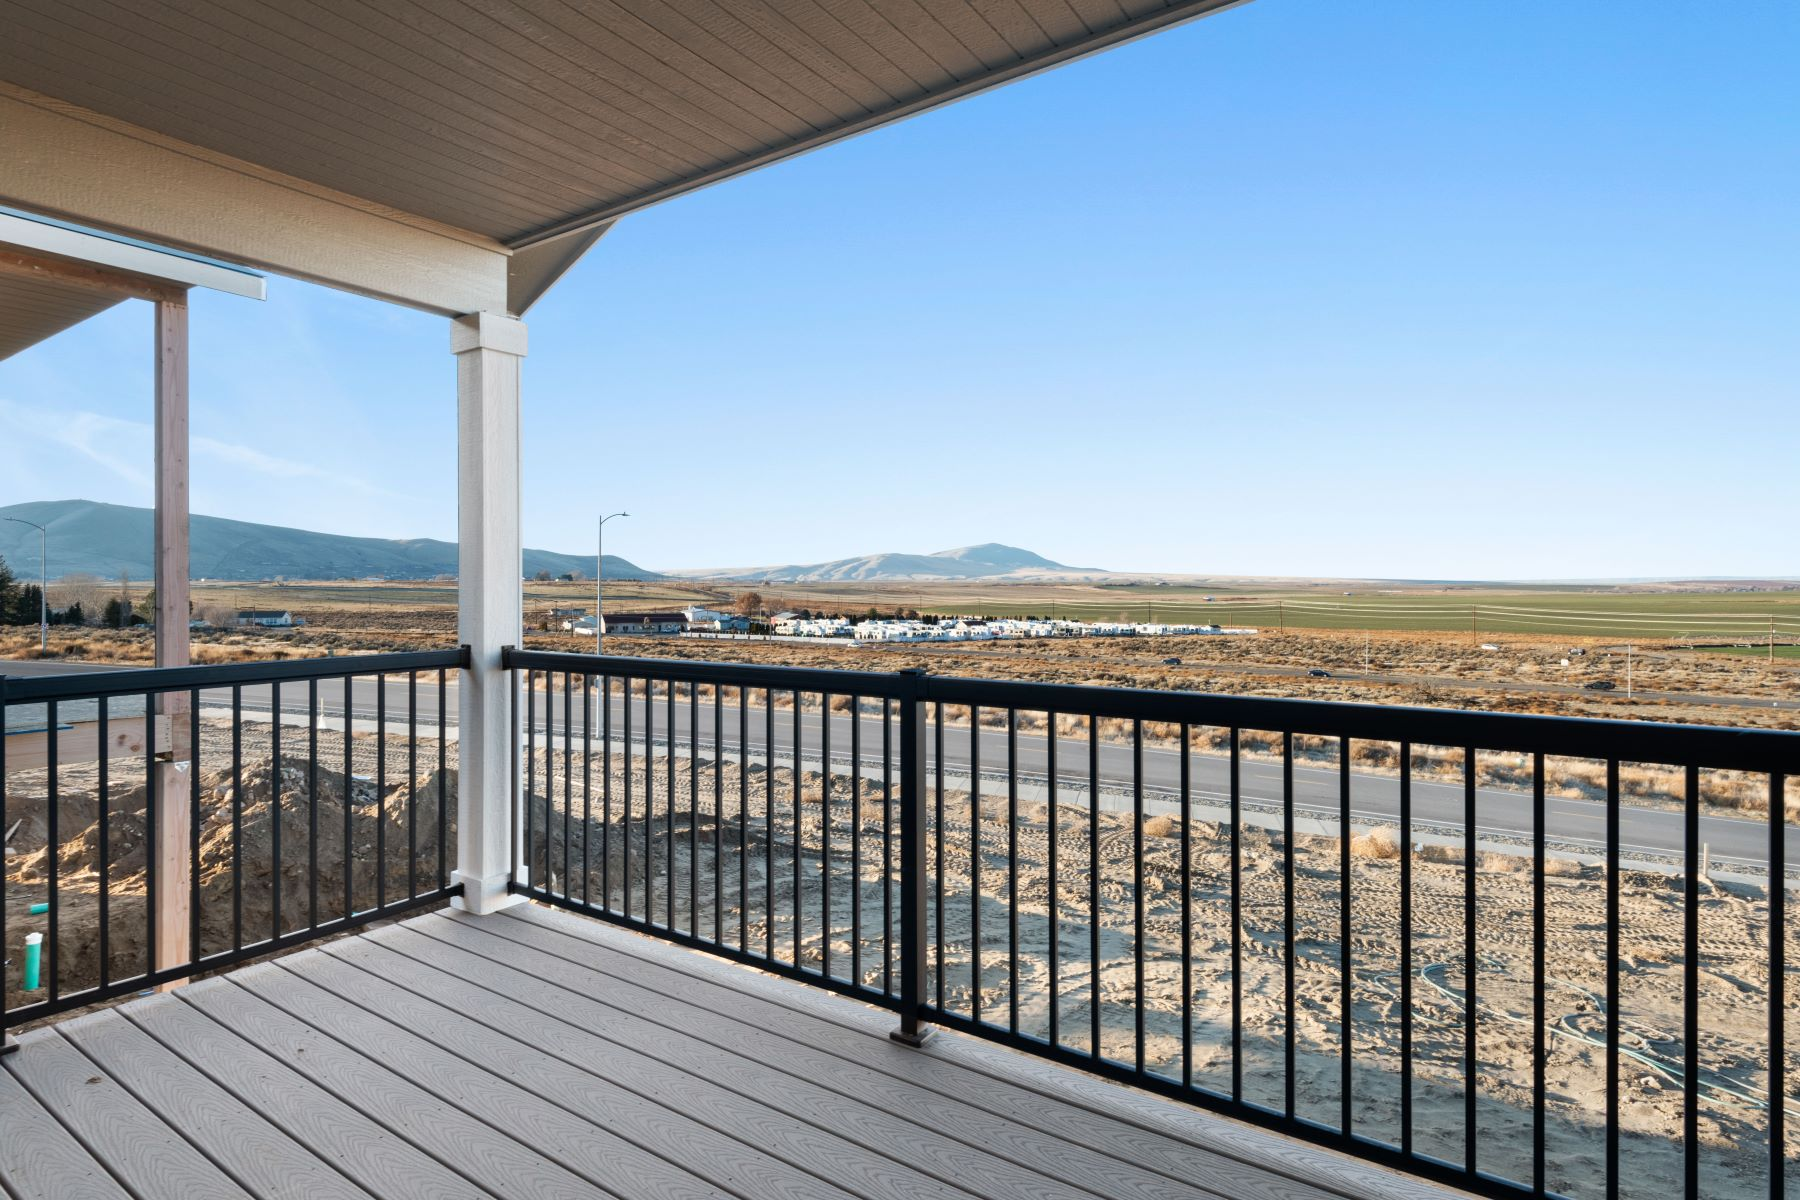 Single Family Homes for Sale at NEW TOWNHOUSE COMMUNITY WITH VIEWS! 455 BEDROCK LOOP West Richland, Washington 99353 United States